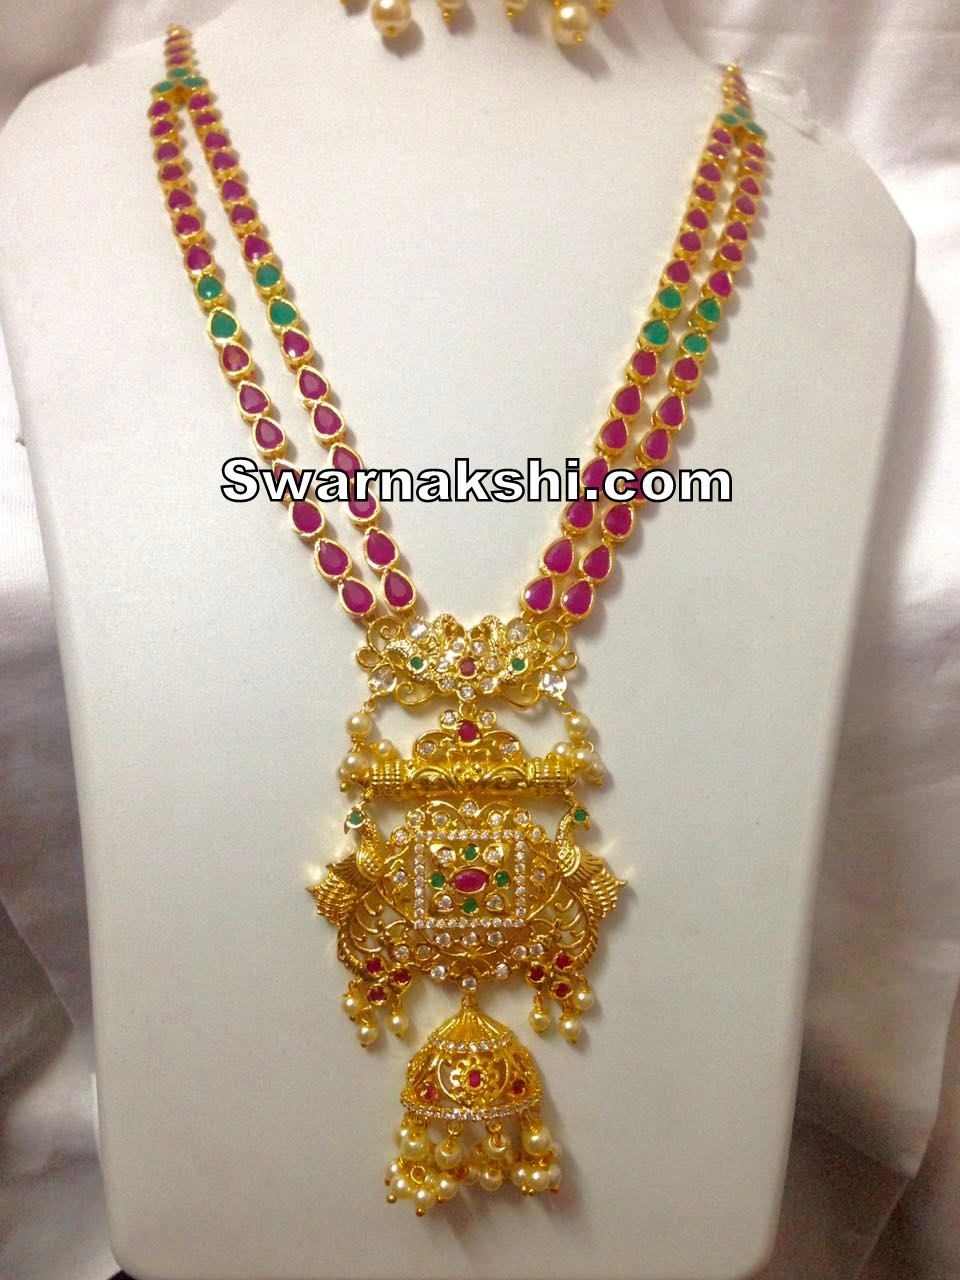 88d53824b 1 gram gold ruby emerald stones long necklace collection For inquiries  please reach the seller below